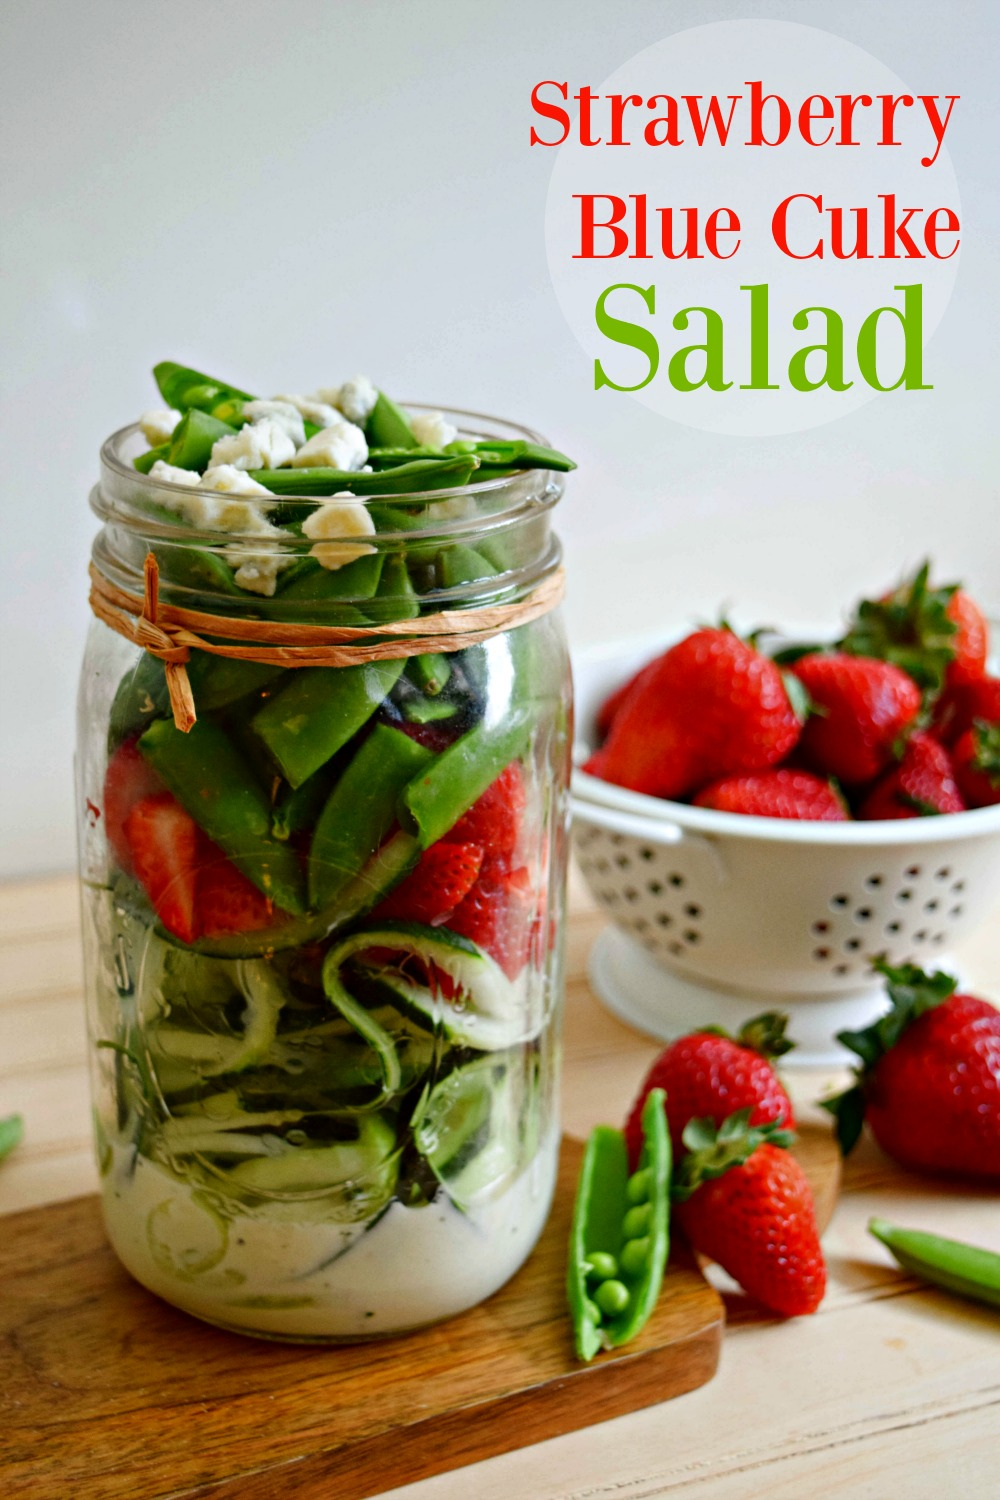 Strawberry Blue Cuke Salad